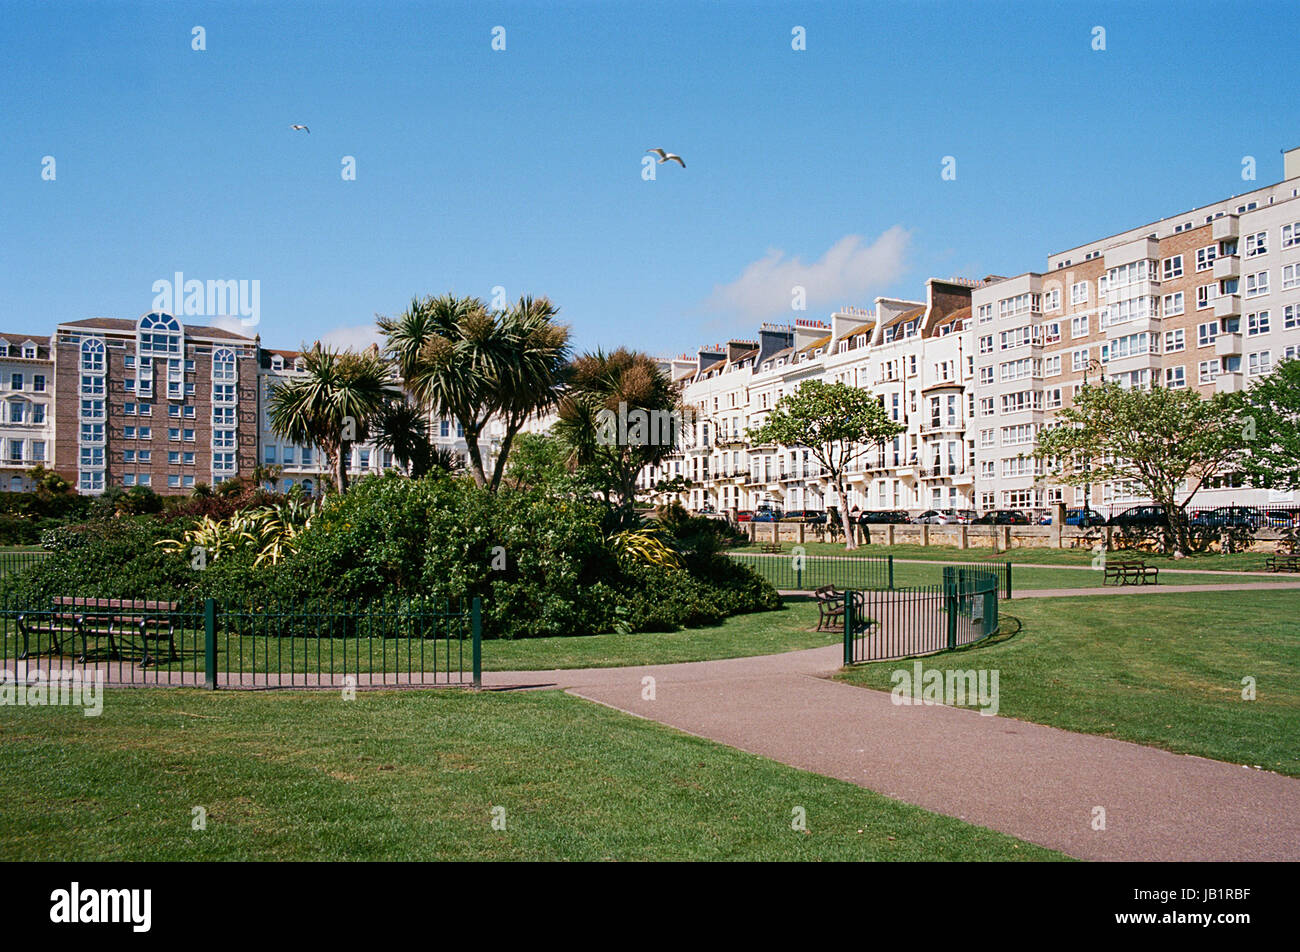 Warrior Square and Gardens, St Leonards On Sea, East Sussex, UK Stock Photo